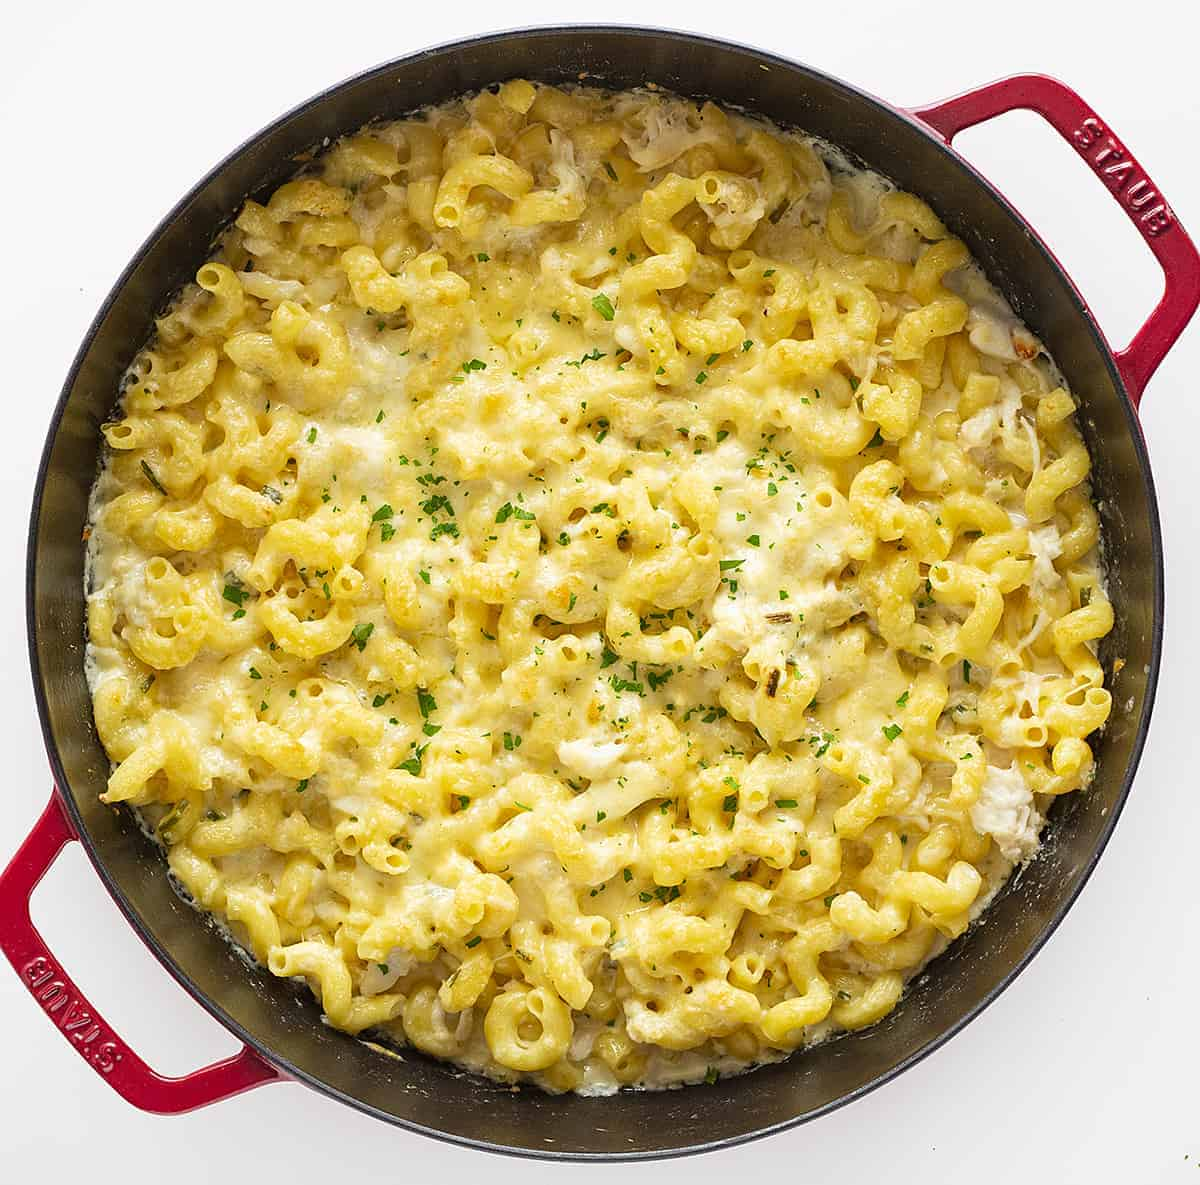 Overhead view of Crab and Macaroni and Cheese in a Red Skillet